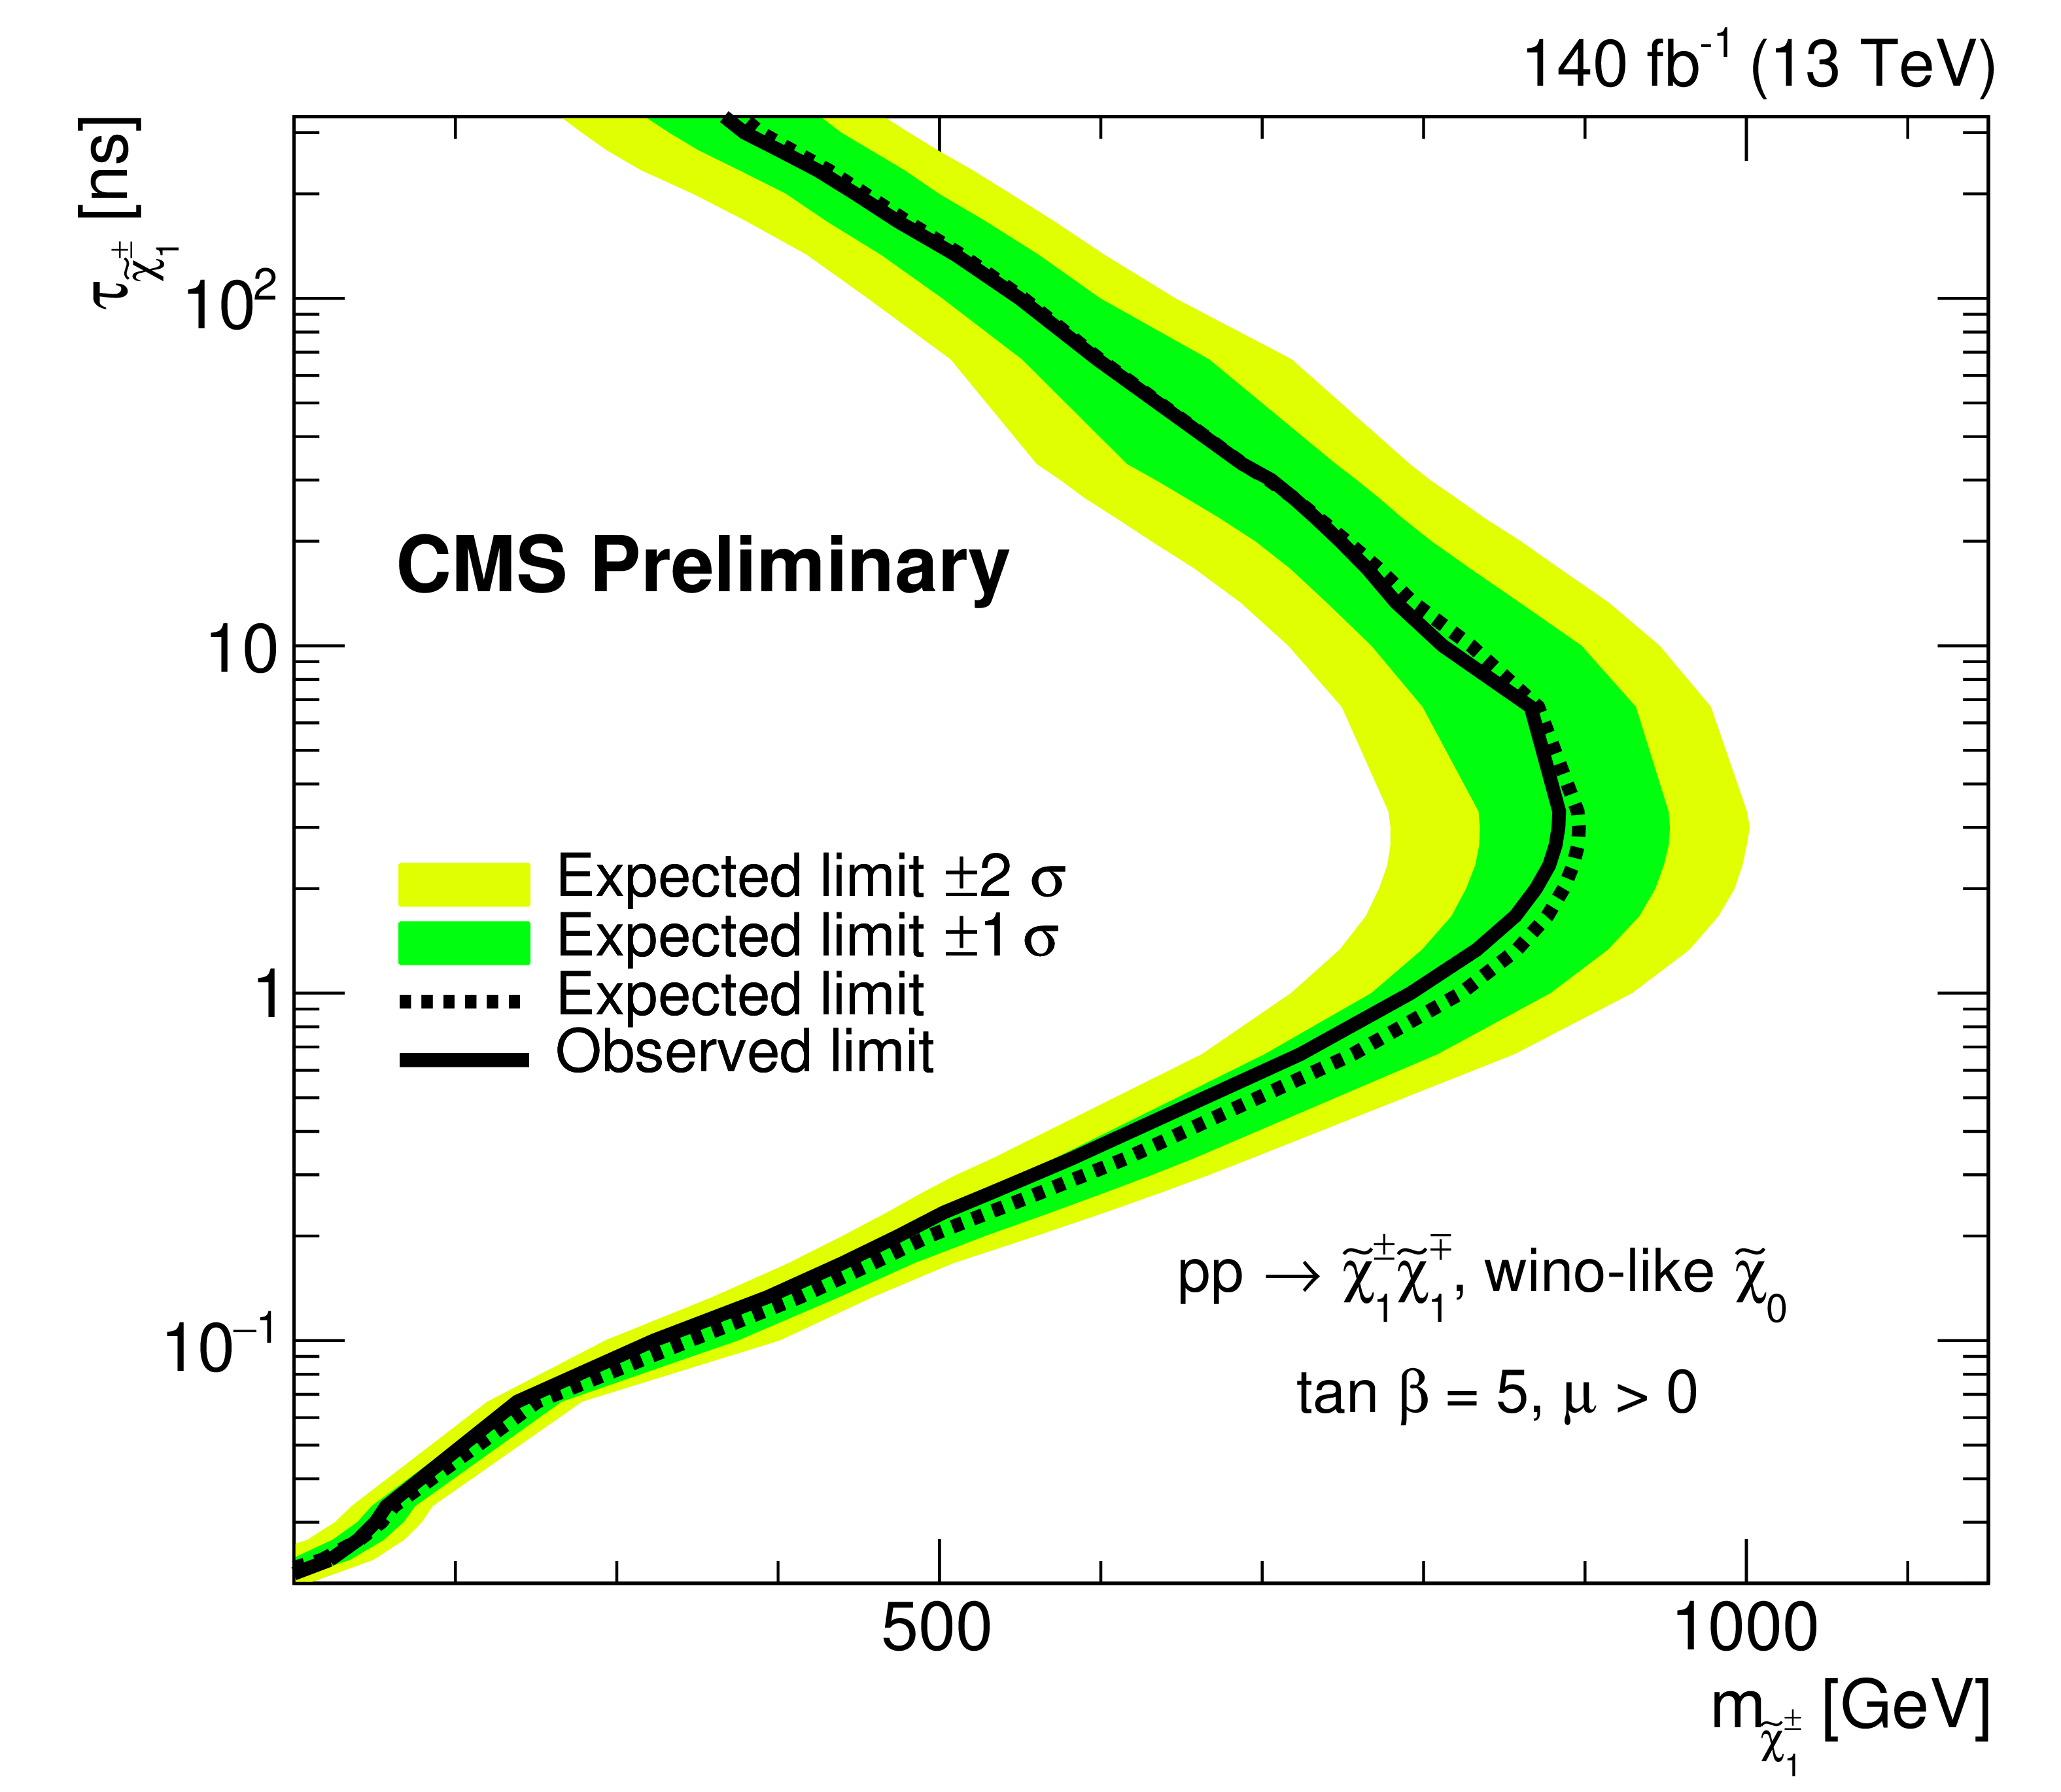 : Results of the search for disappearing tracks. The black curve represents upper limits on the mass of the chargino (x-axis) as a function of the chargino lifetime (y-axis). Chargino masses to the left of the curve are excluded by this search. The upgraded tracker is much more sensitive to short tracks, and the exclusion extends to much shorter lifetimes than was possible previously.